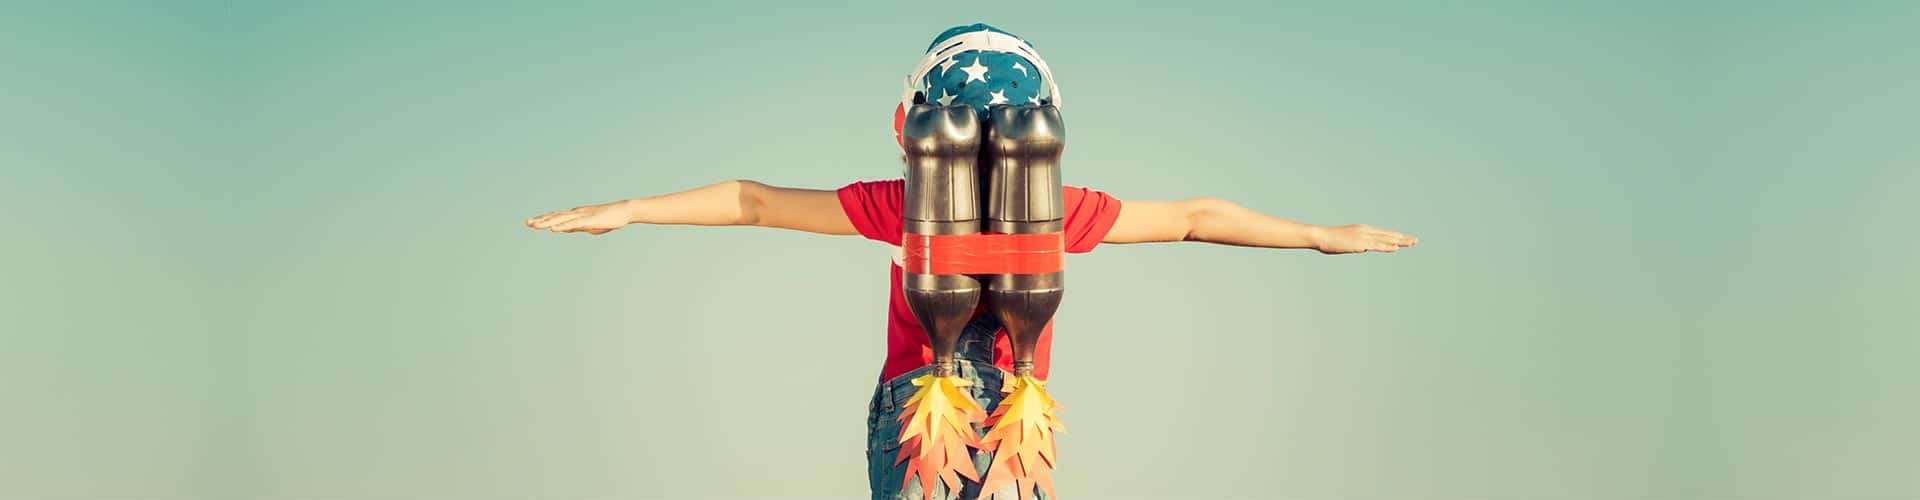 guy with jet pack employee advocacy beyond the share